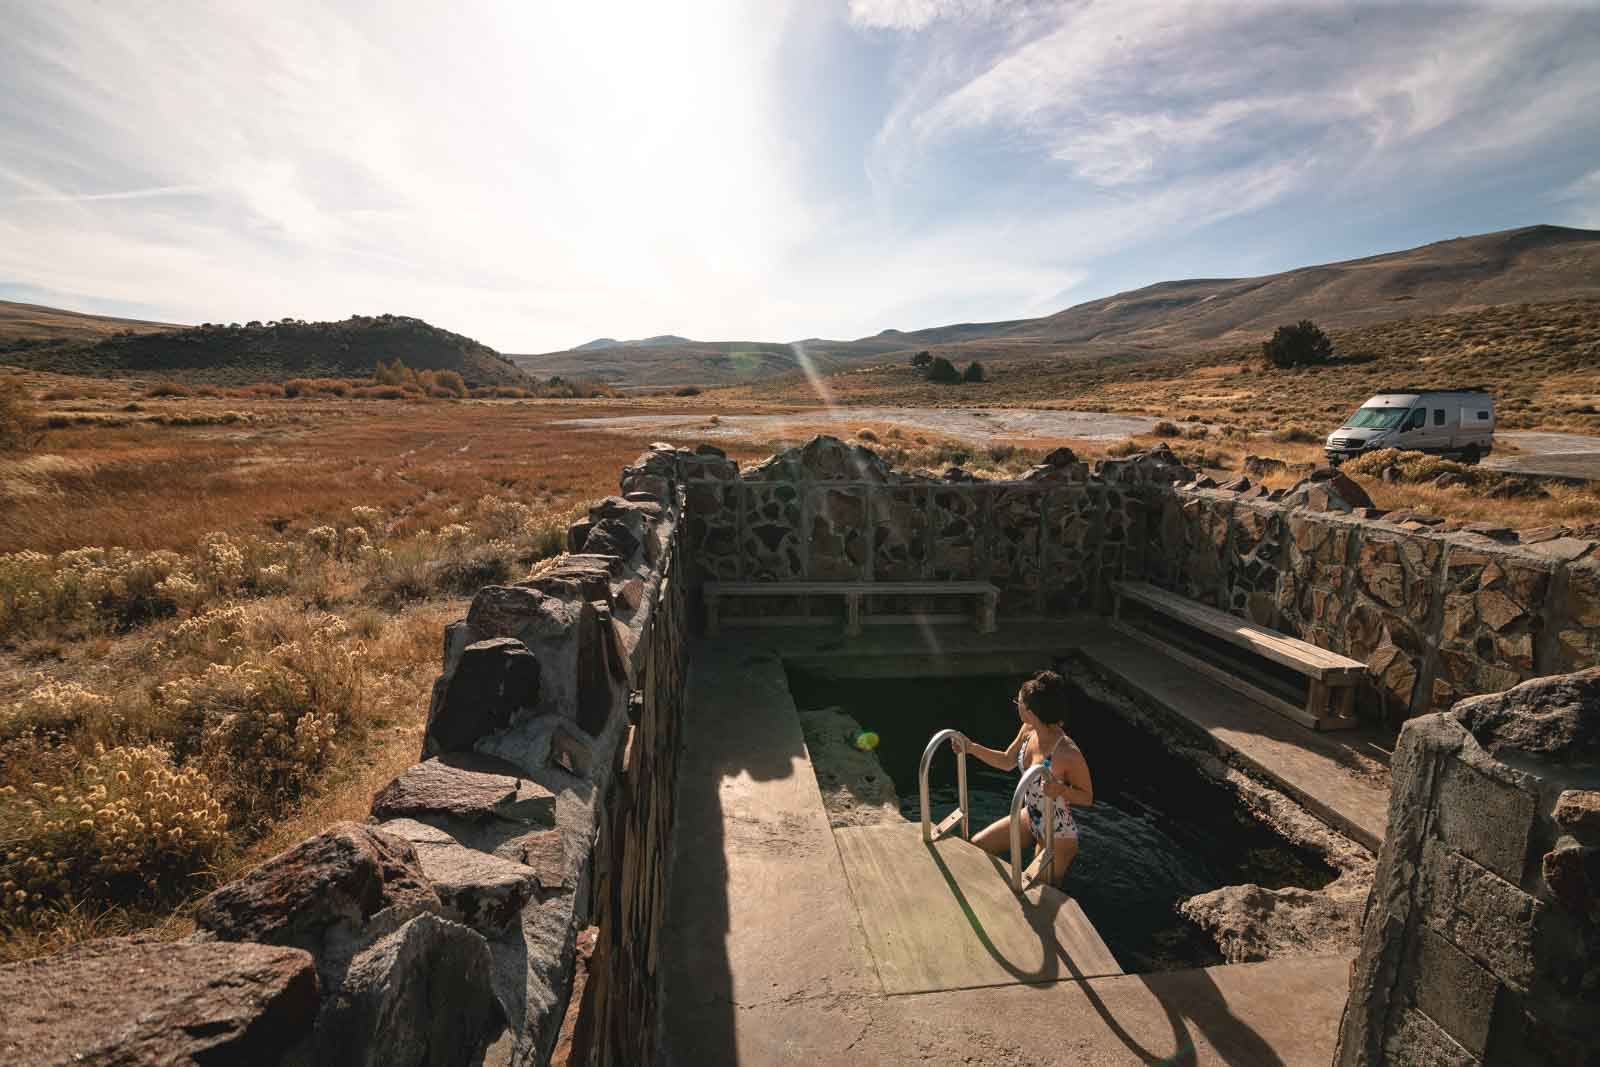 Relax at the Hart Mountain hot springs after a long day on your Oregon road trip.